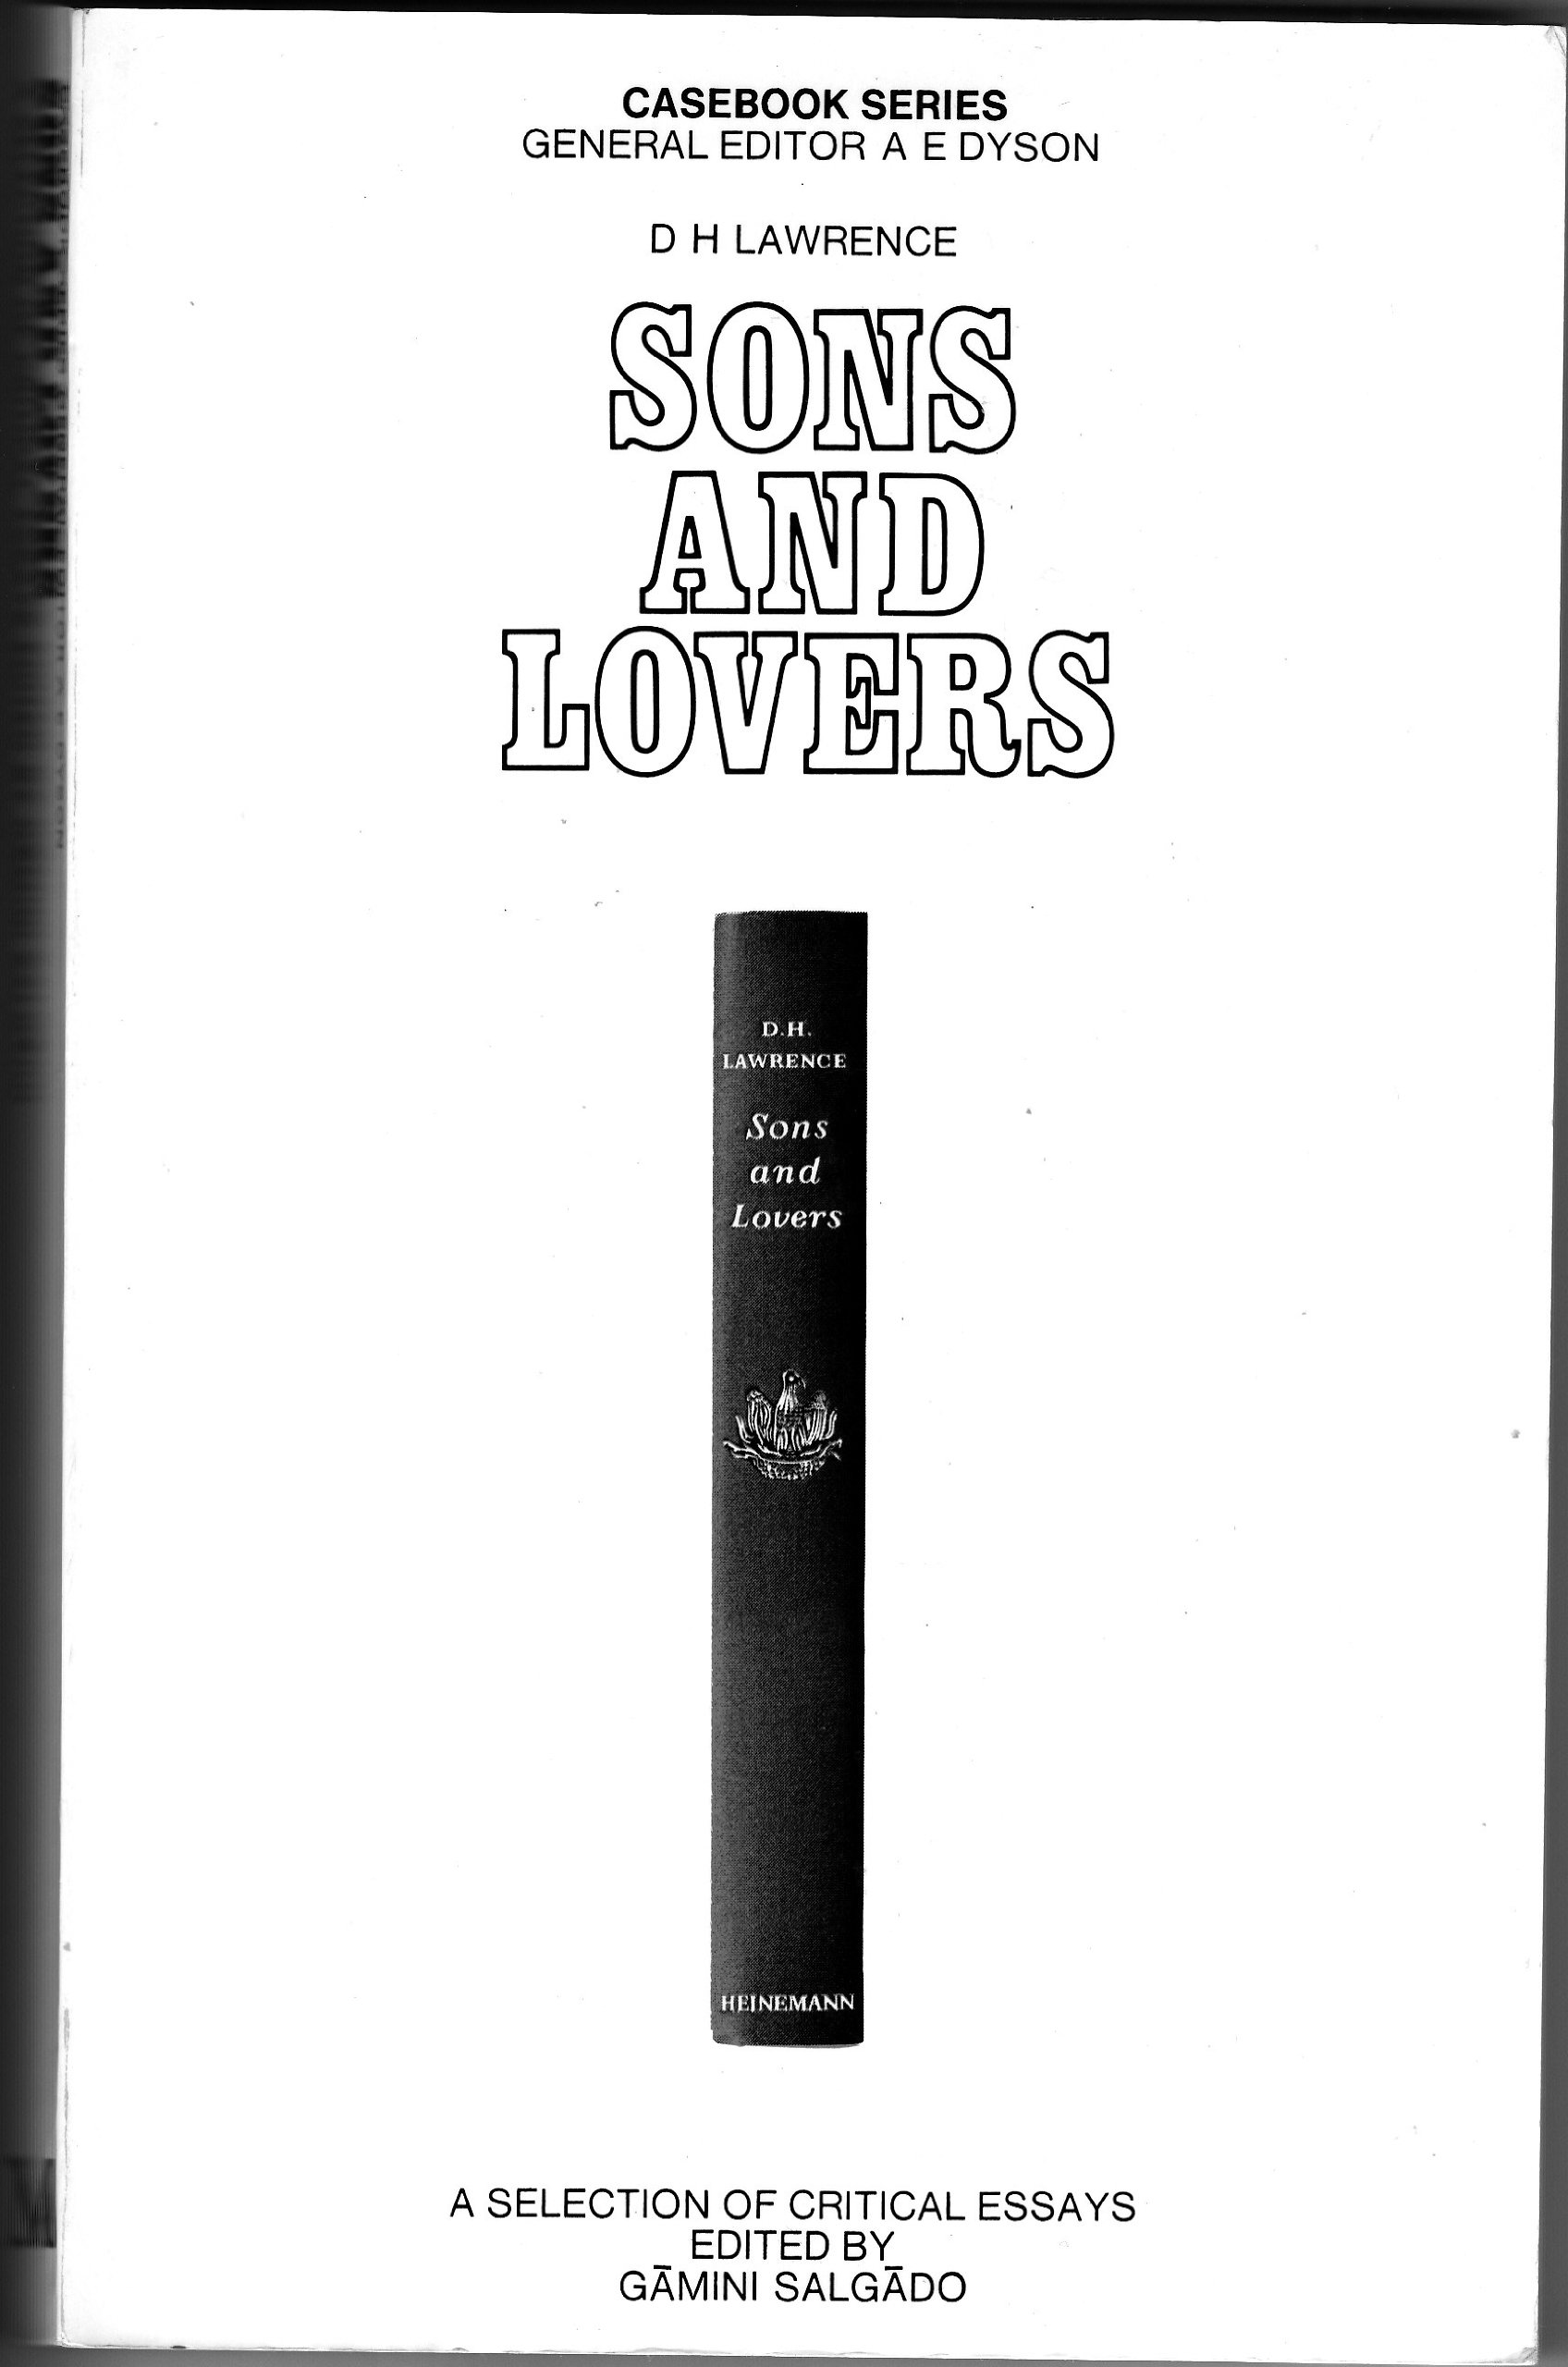 D.H. LAWRENCE, SONS AND LOVERS: A CASEBOOK